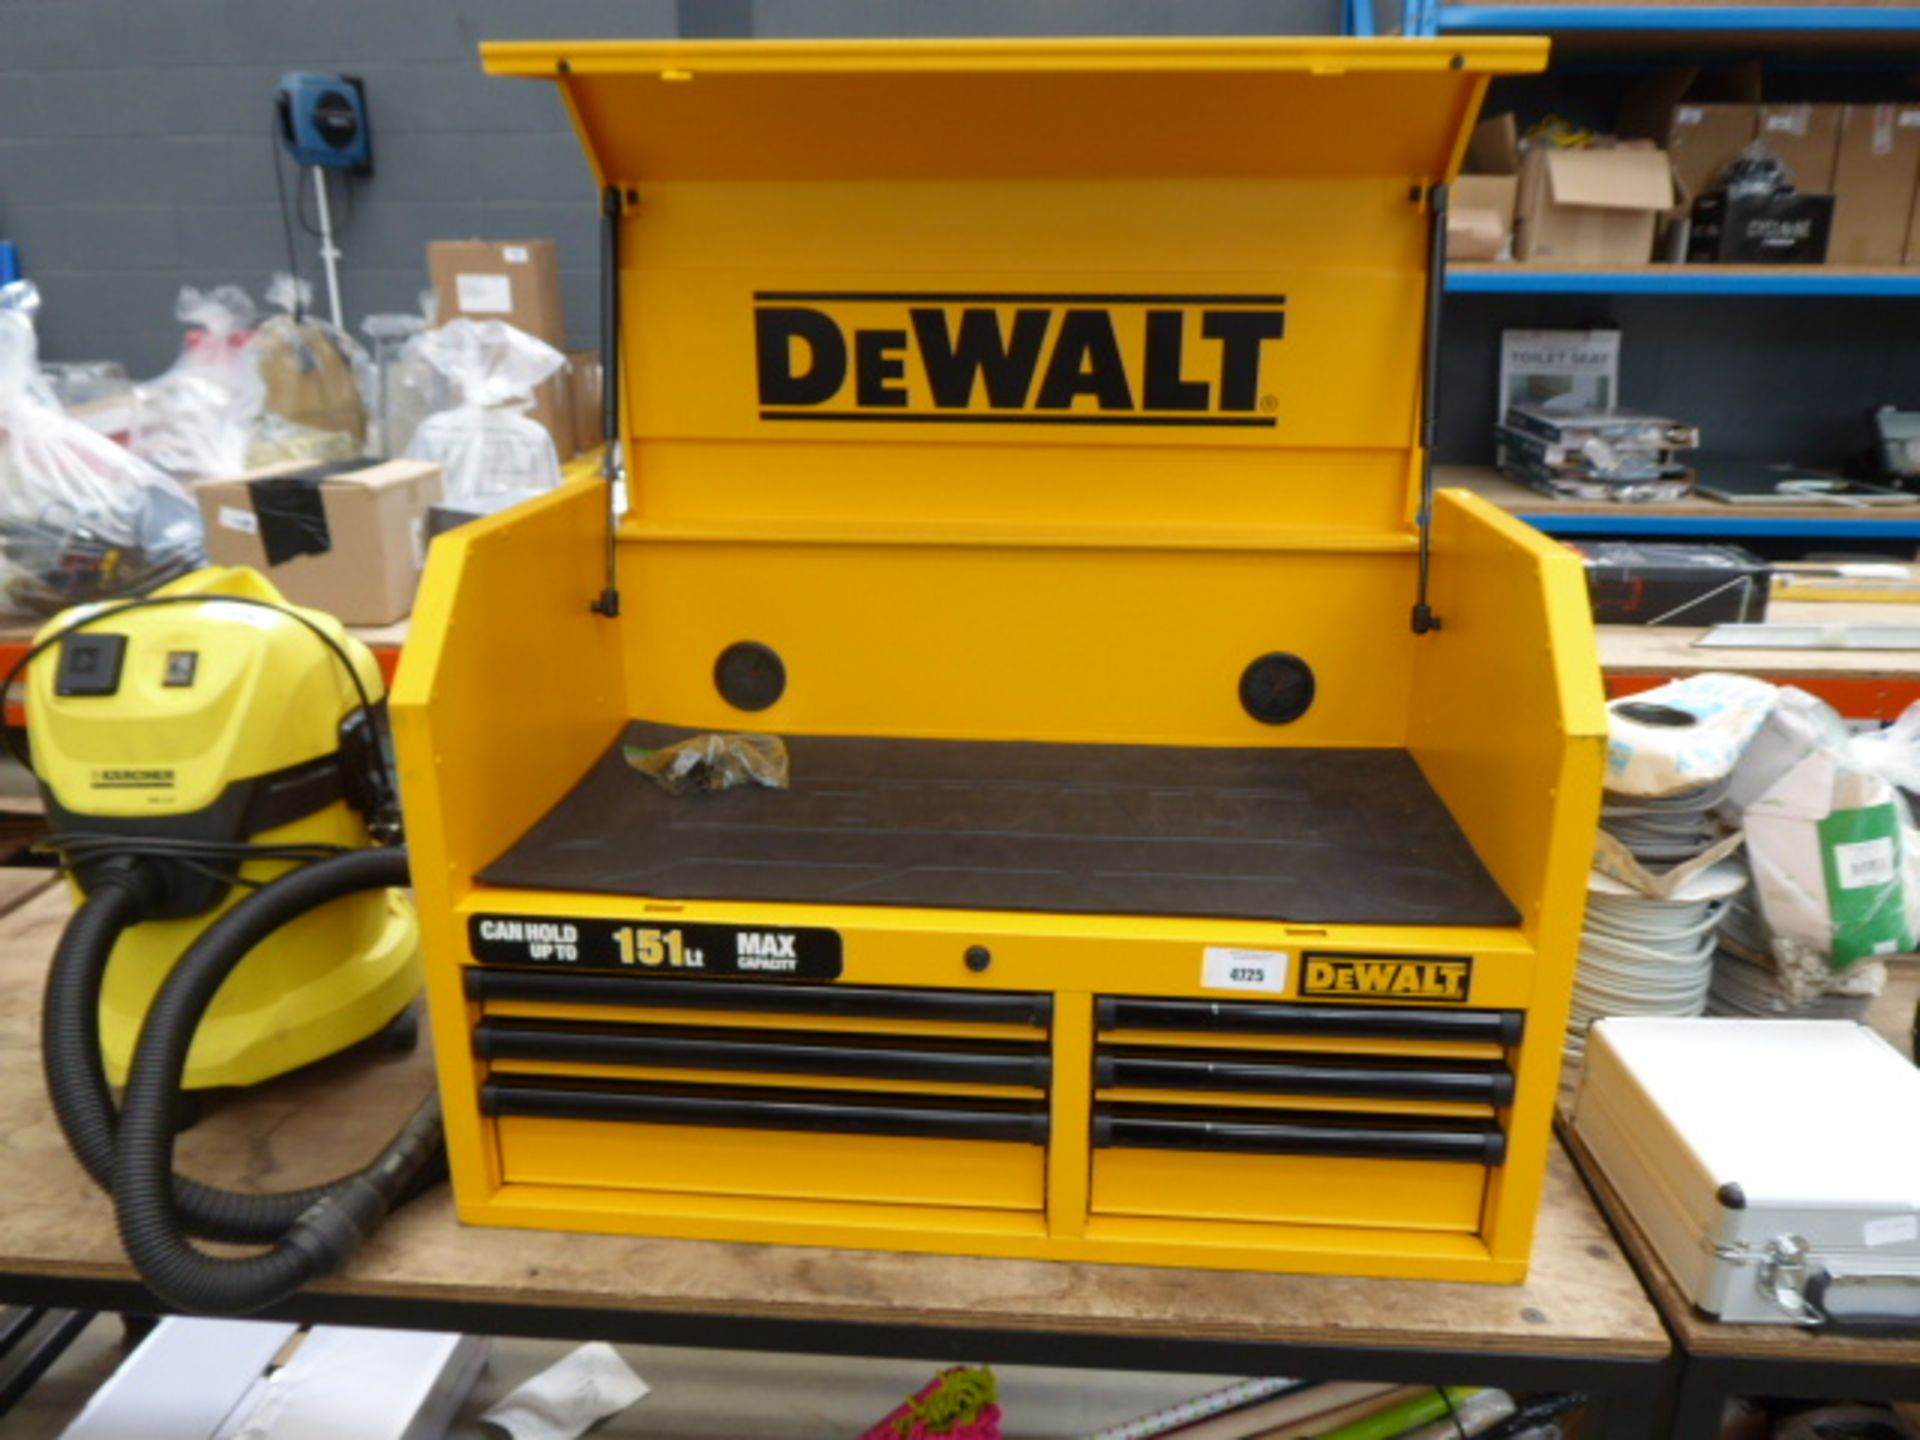 Lot 4725 - Large 151 litre DeWalt yellow toolbox with drawers